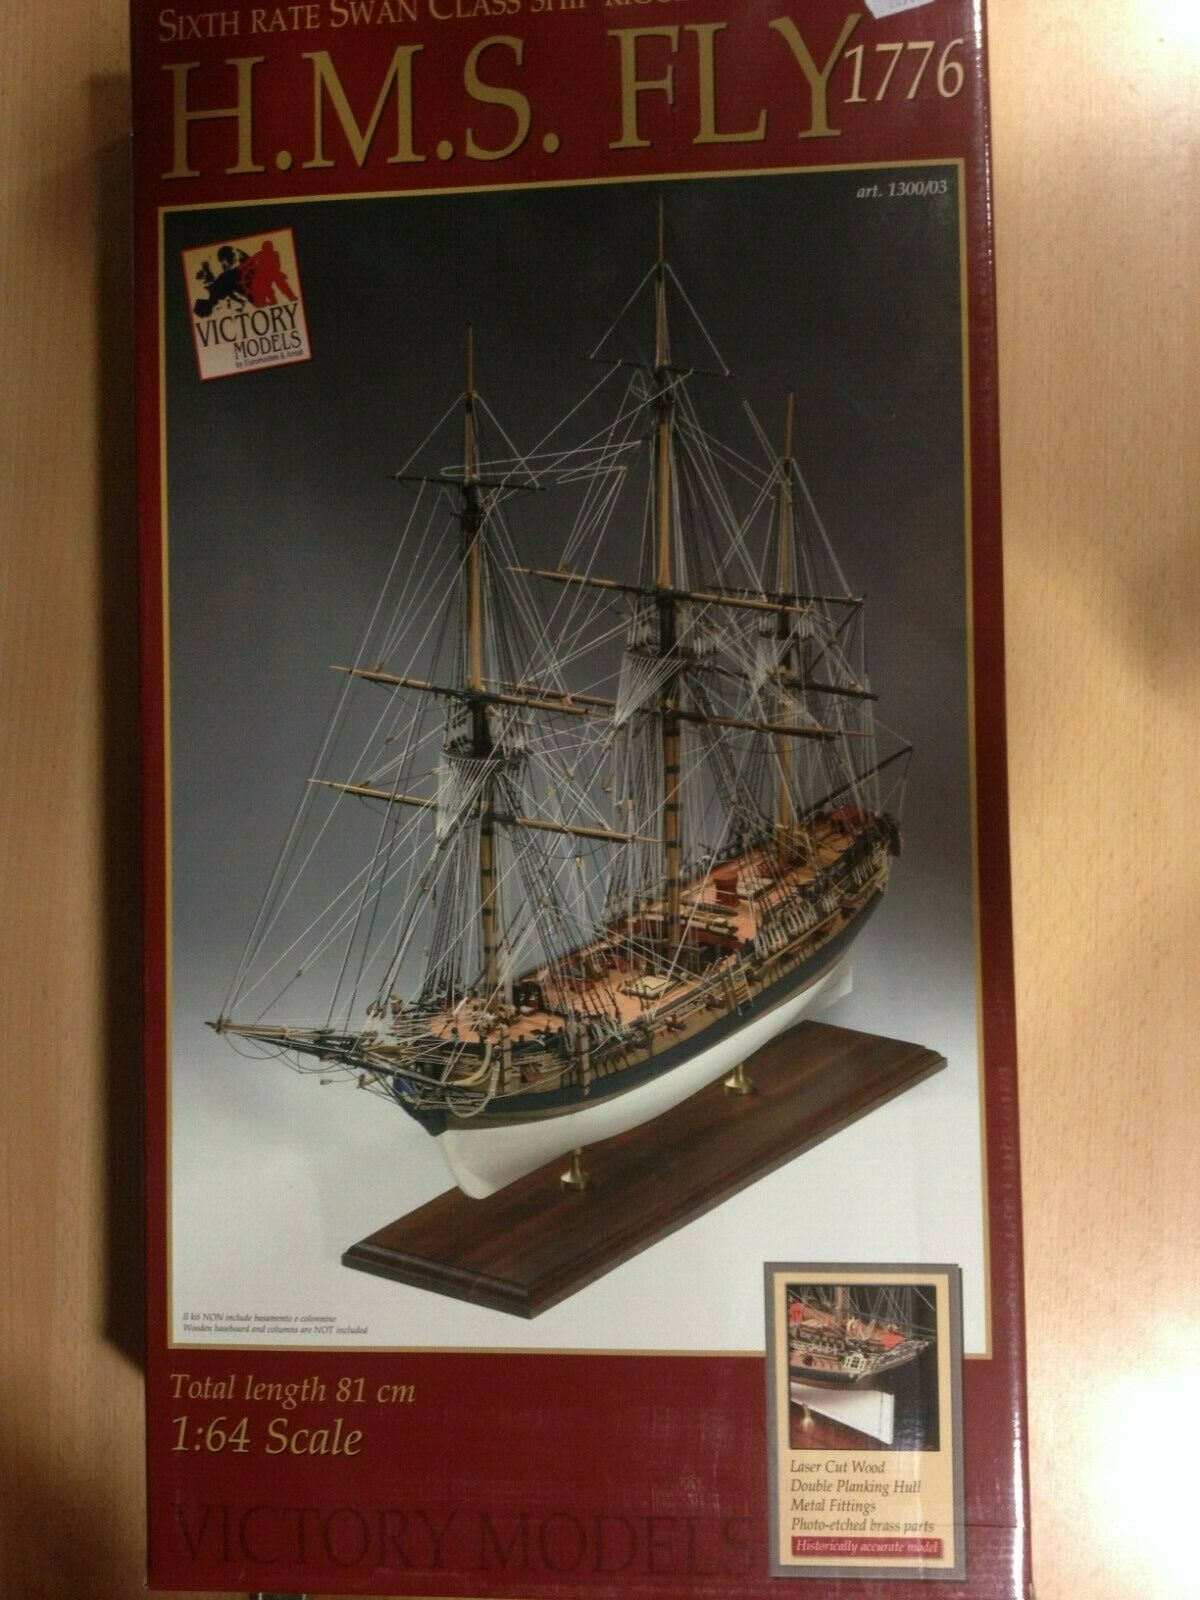 VICTORY MODELS kiT H.M.S. Fly 1776,Ref.1300 03,escala.1 64